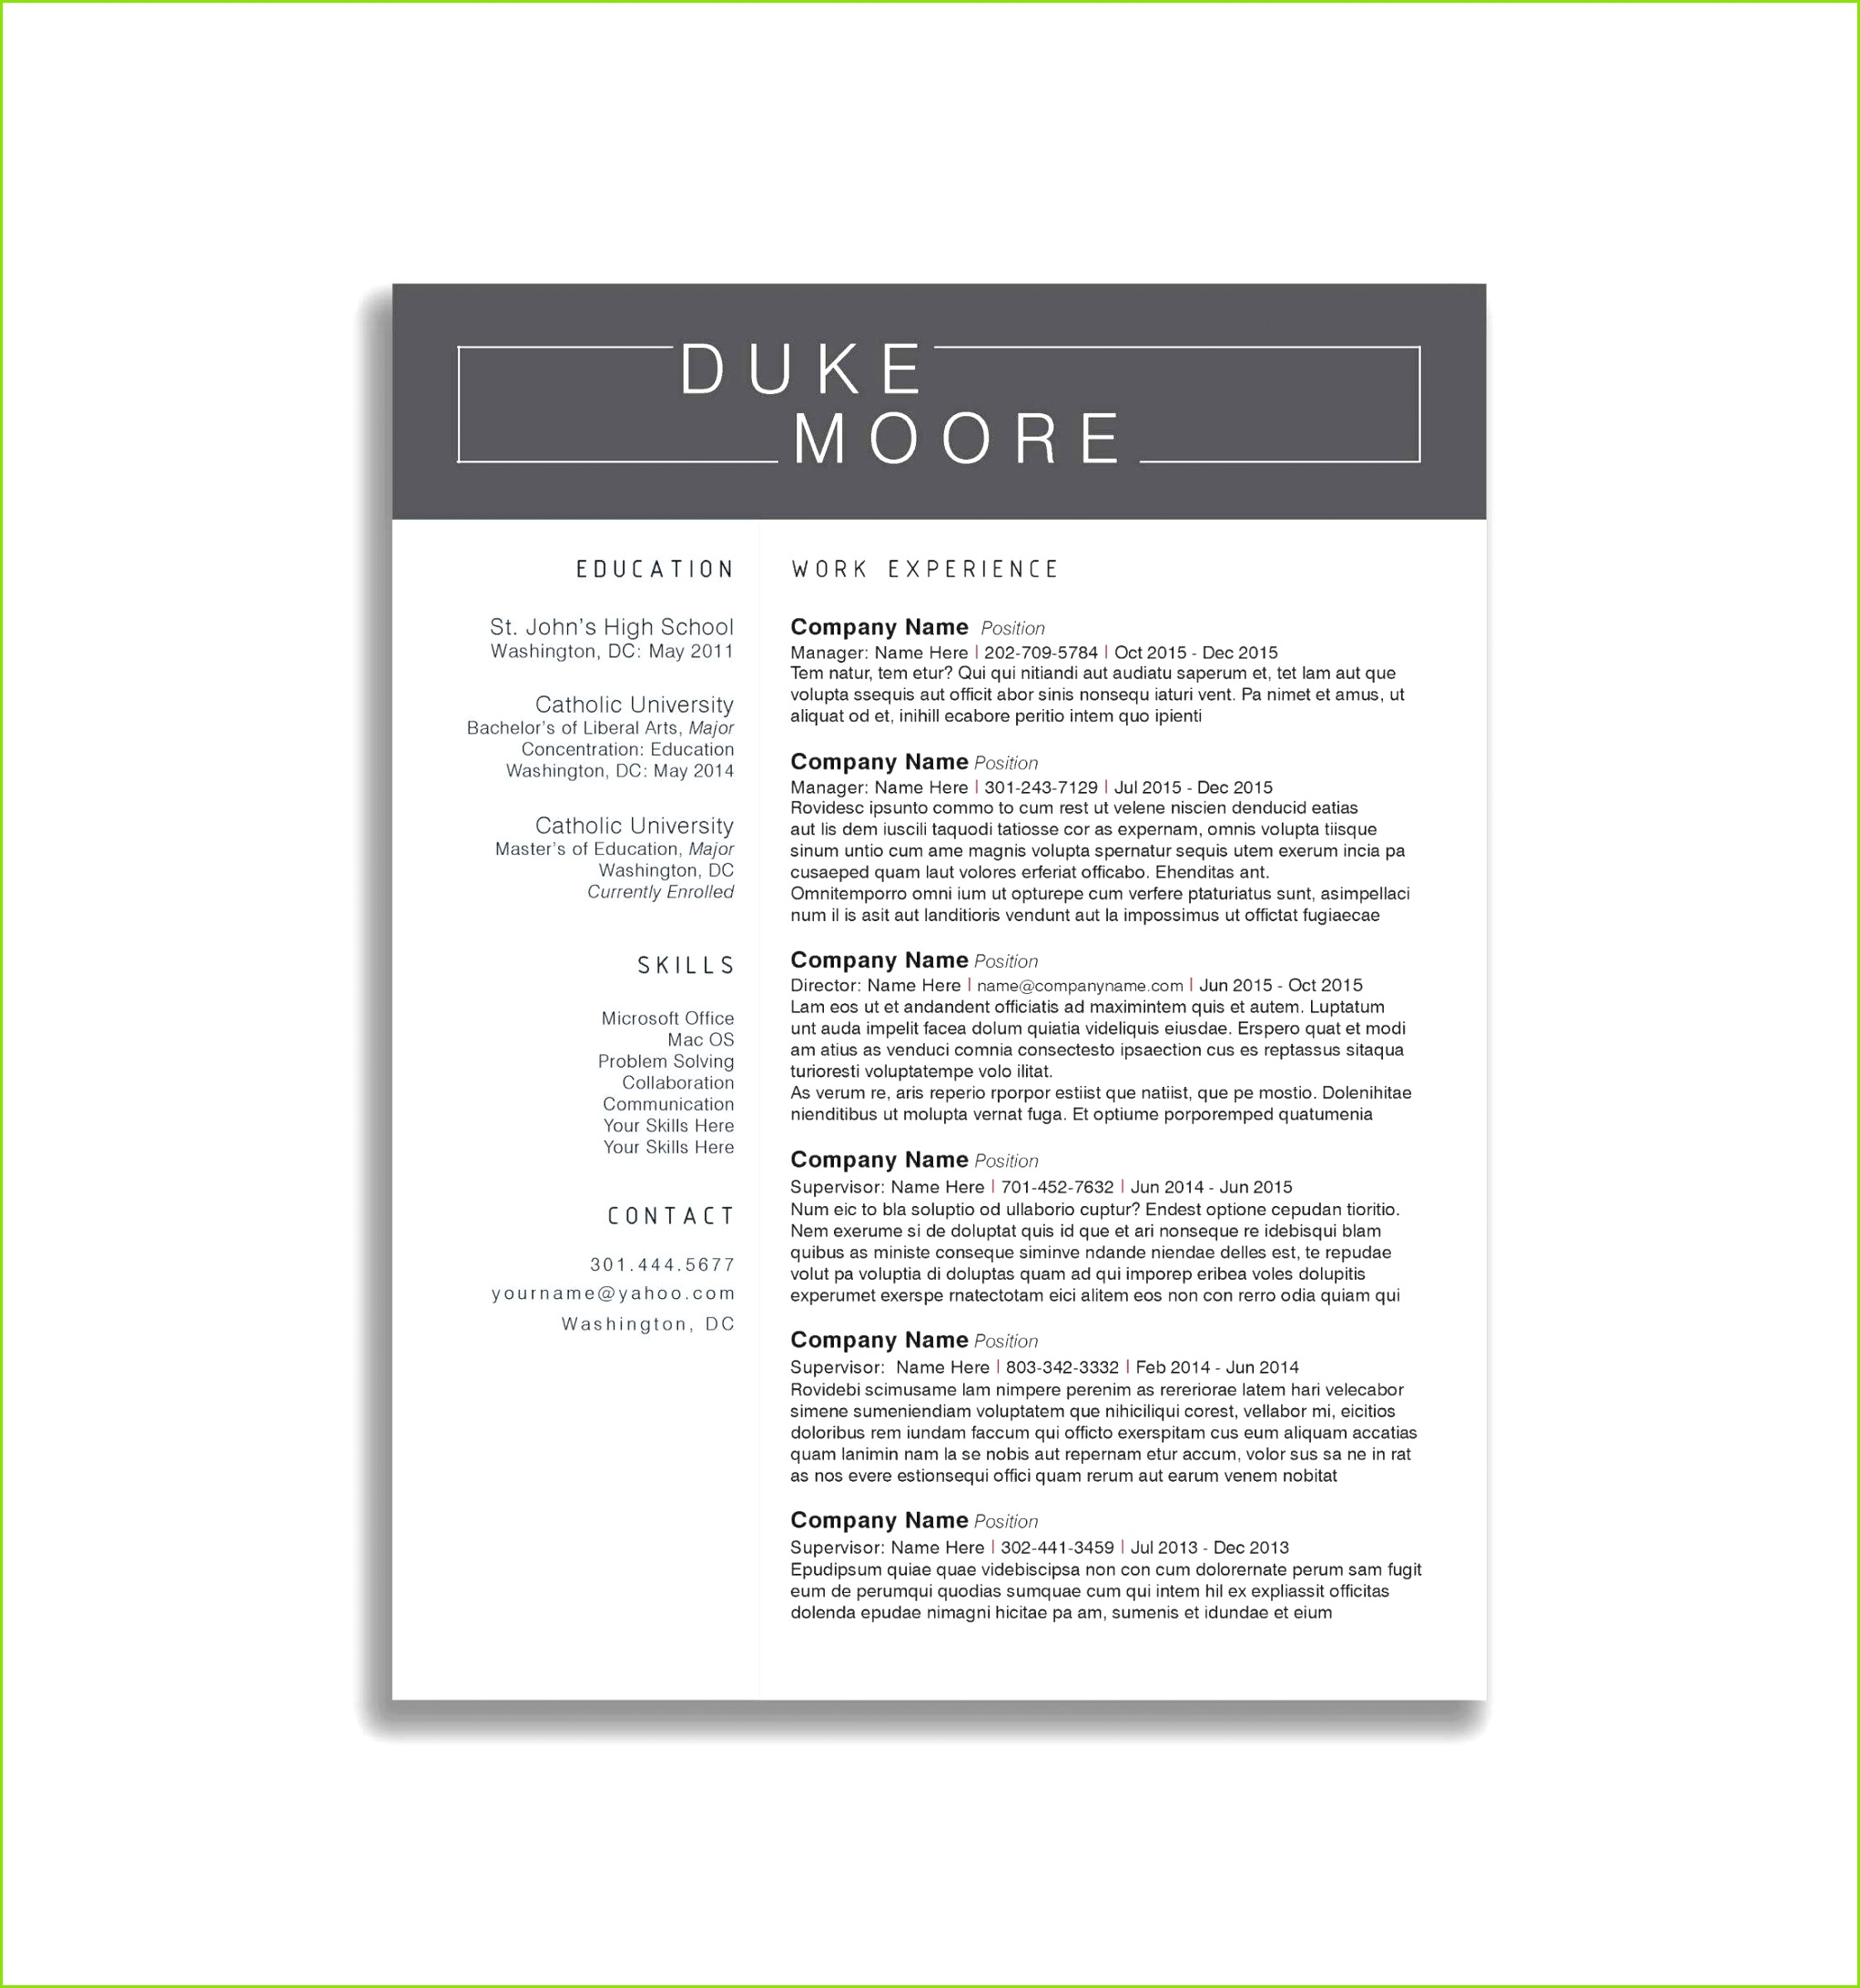 Cover Letter Layout Template 2018 Lebenslauf Download Word Schön Cover Letter In Word Format